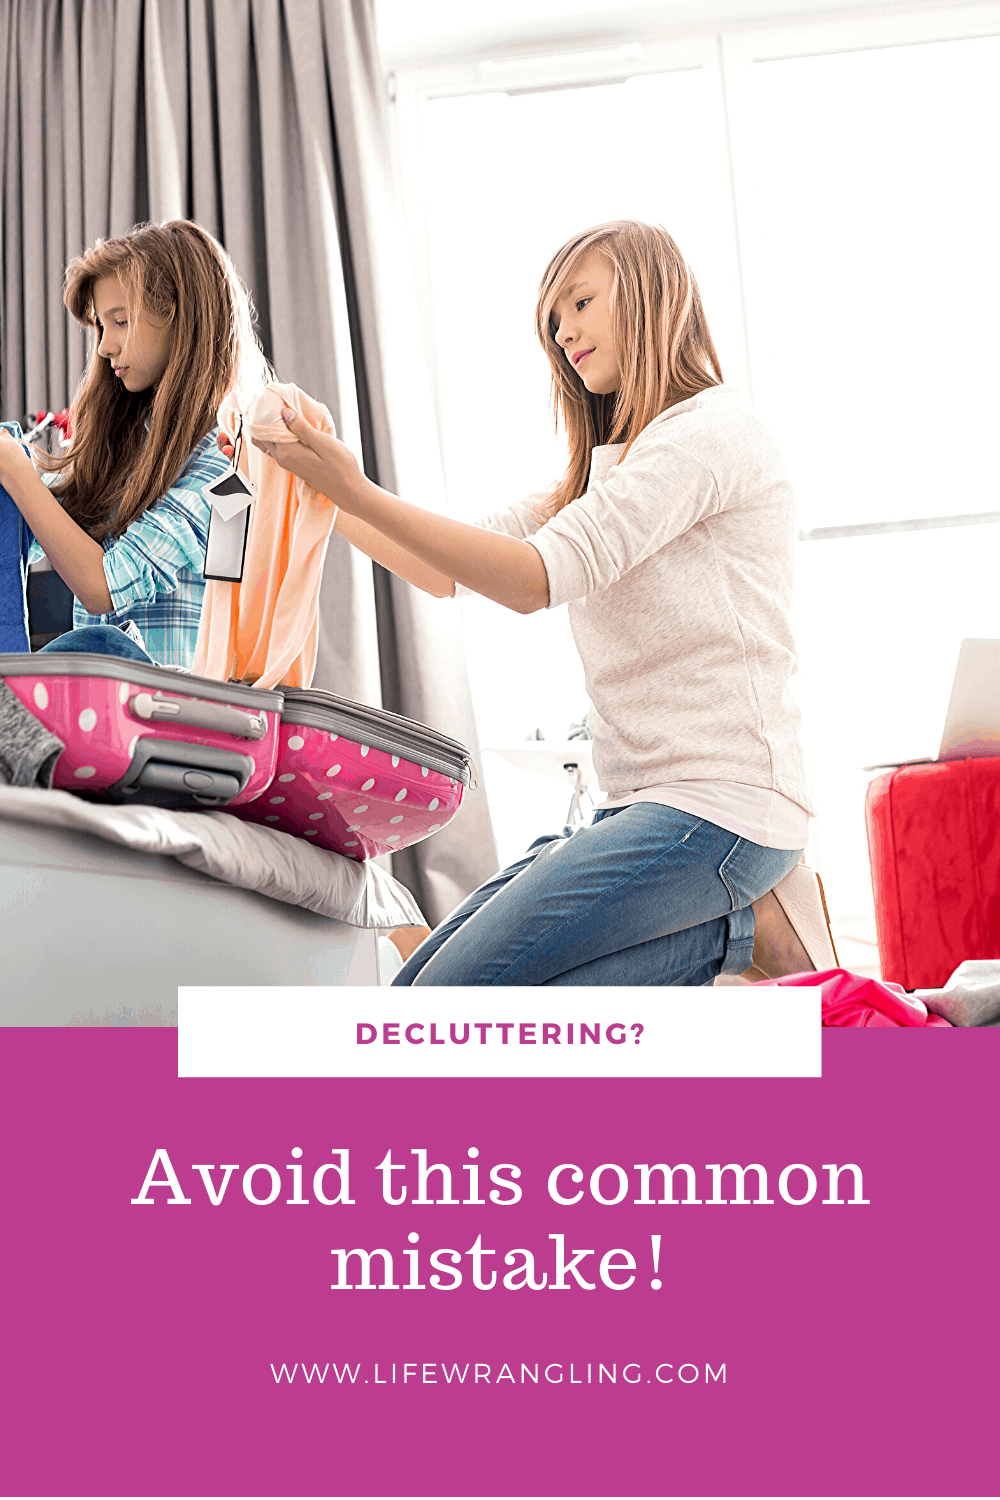 An important thing to avoid in your decluttering journey.